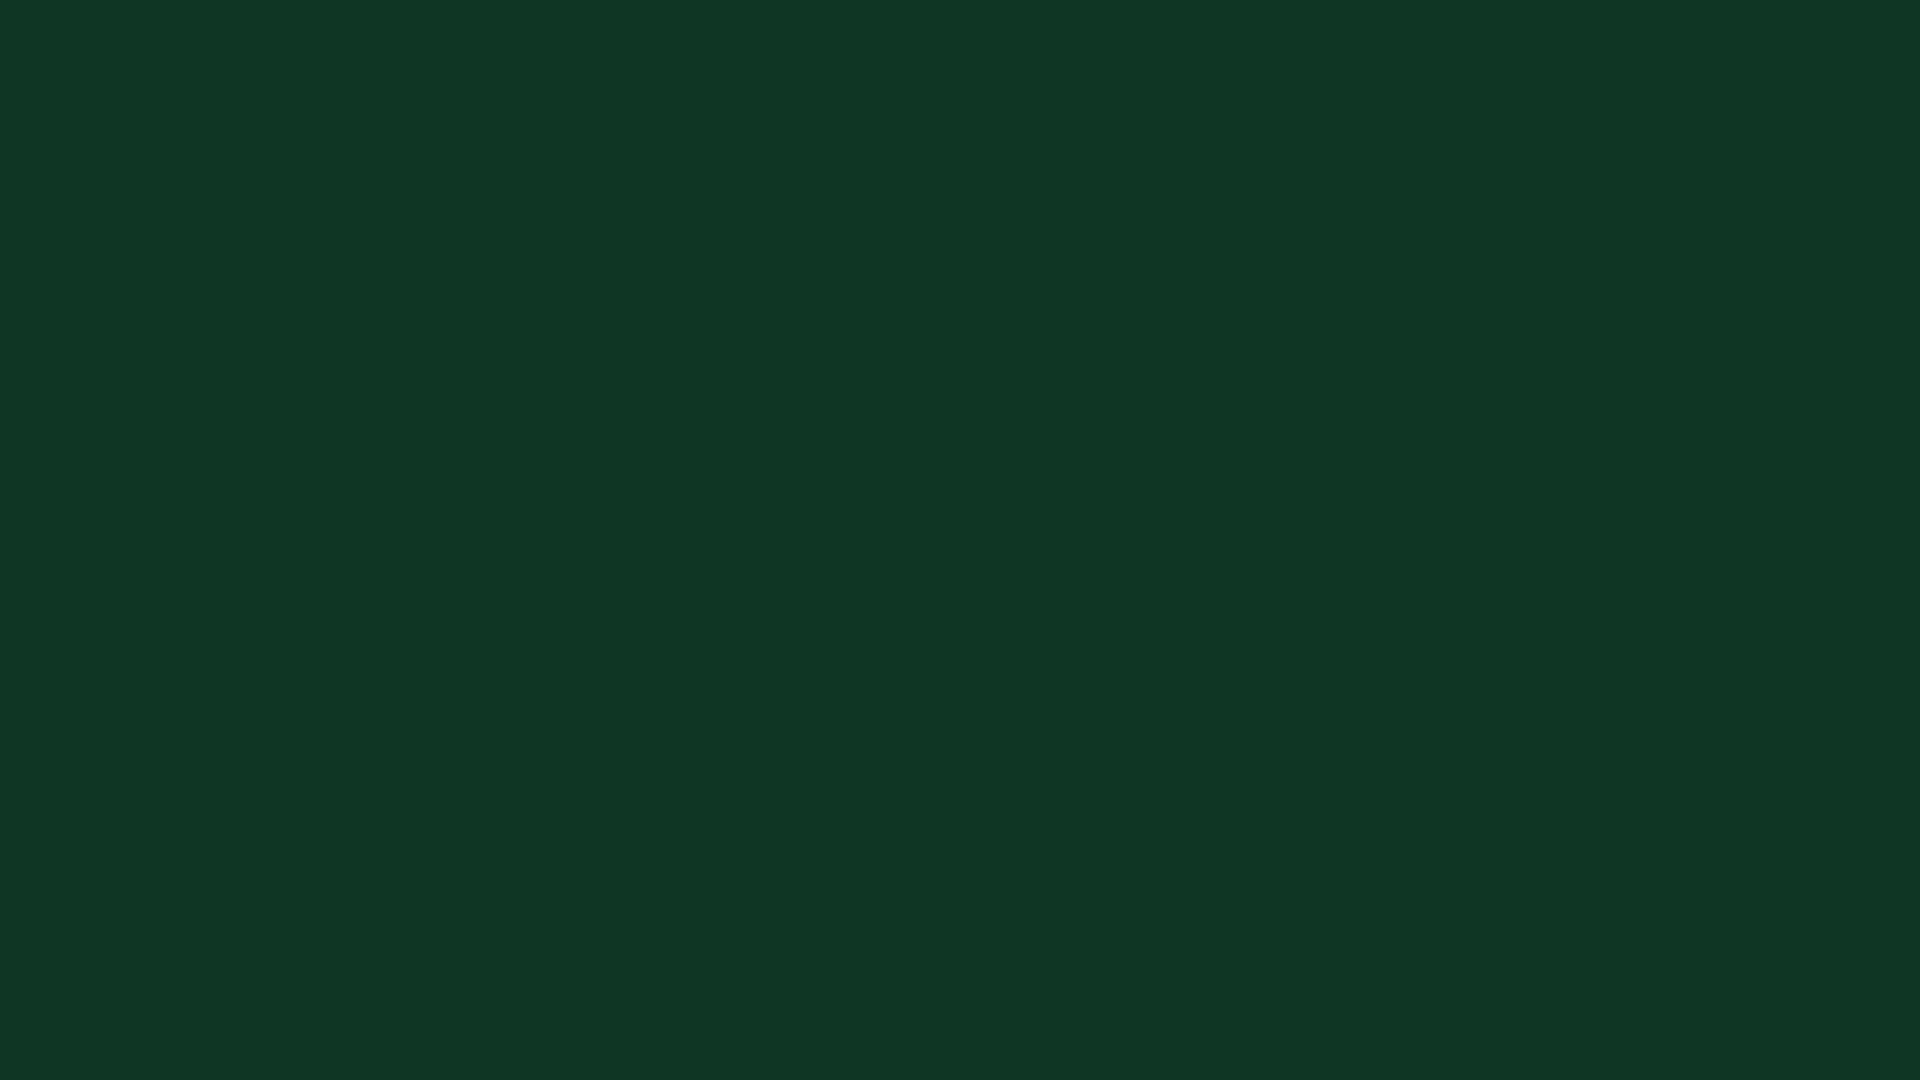 Phthalo Green Solid Color Background